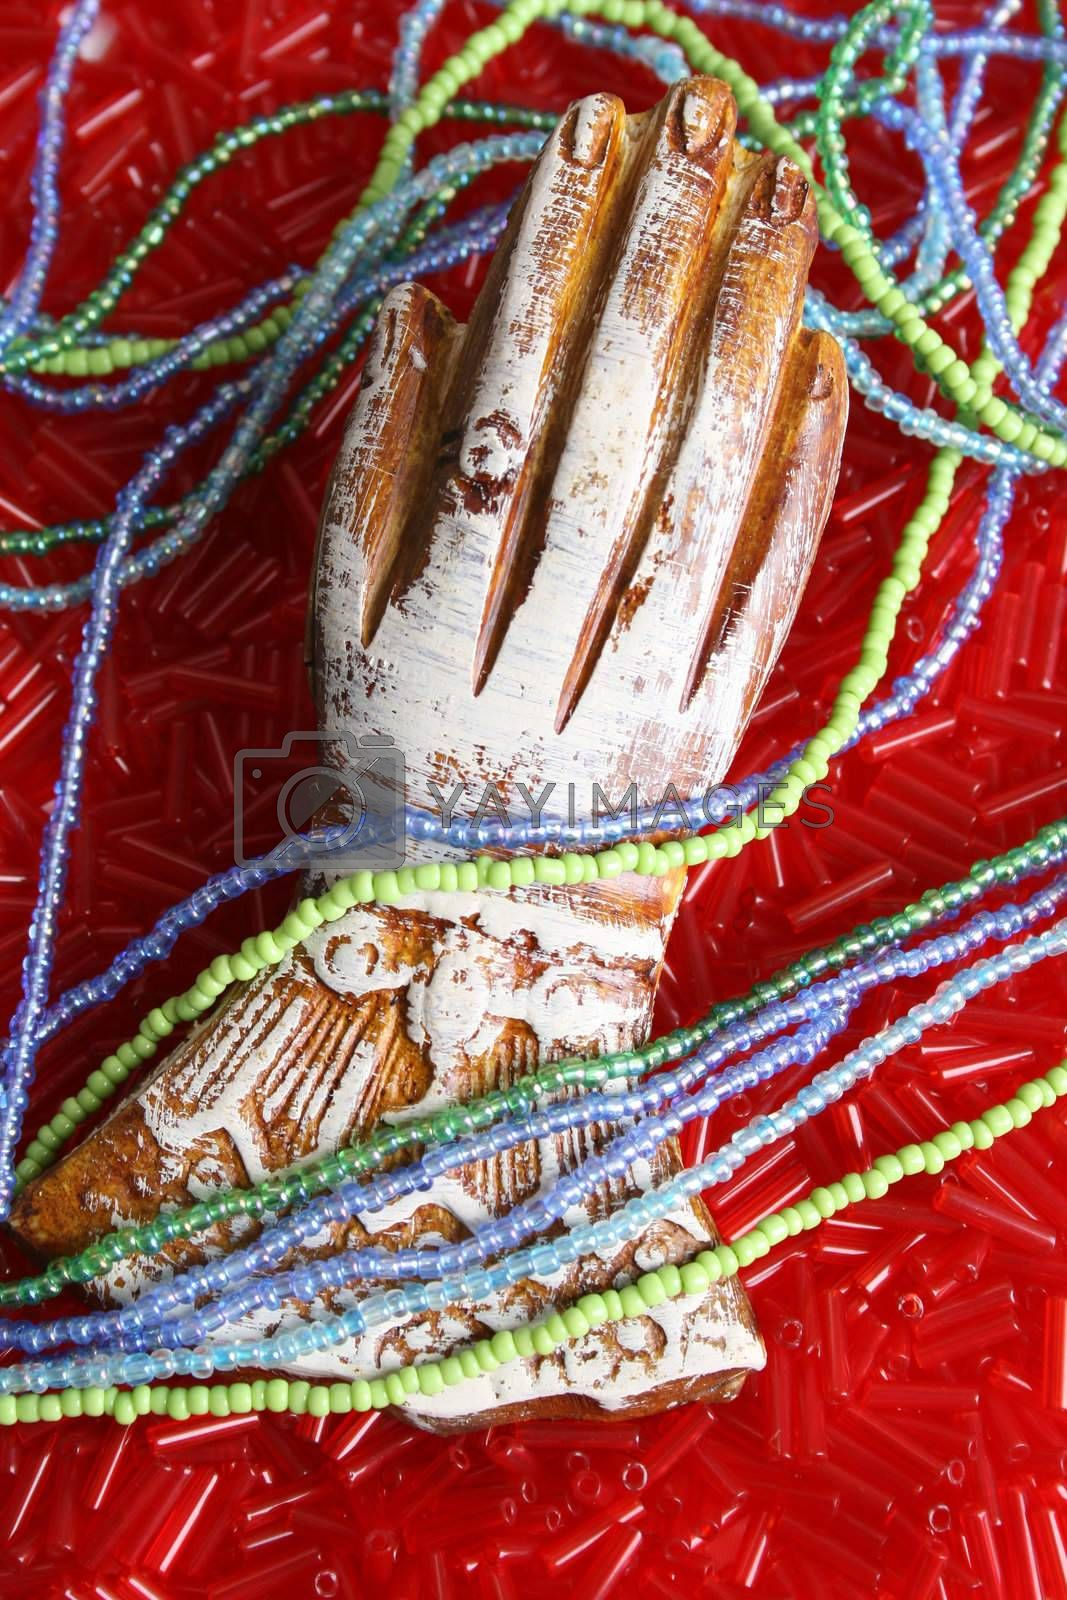 Ornate wooden hand on a bed of beads with strings